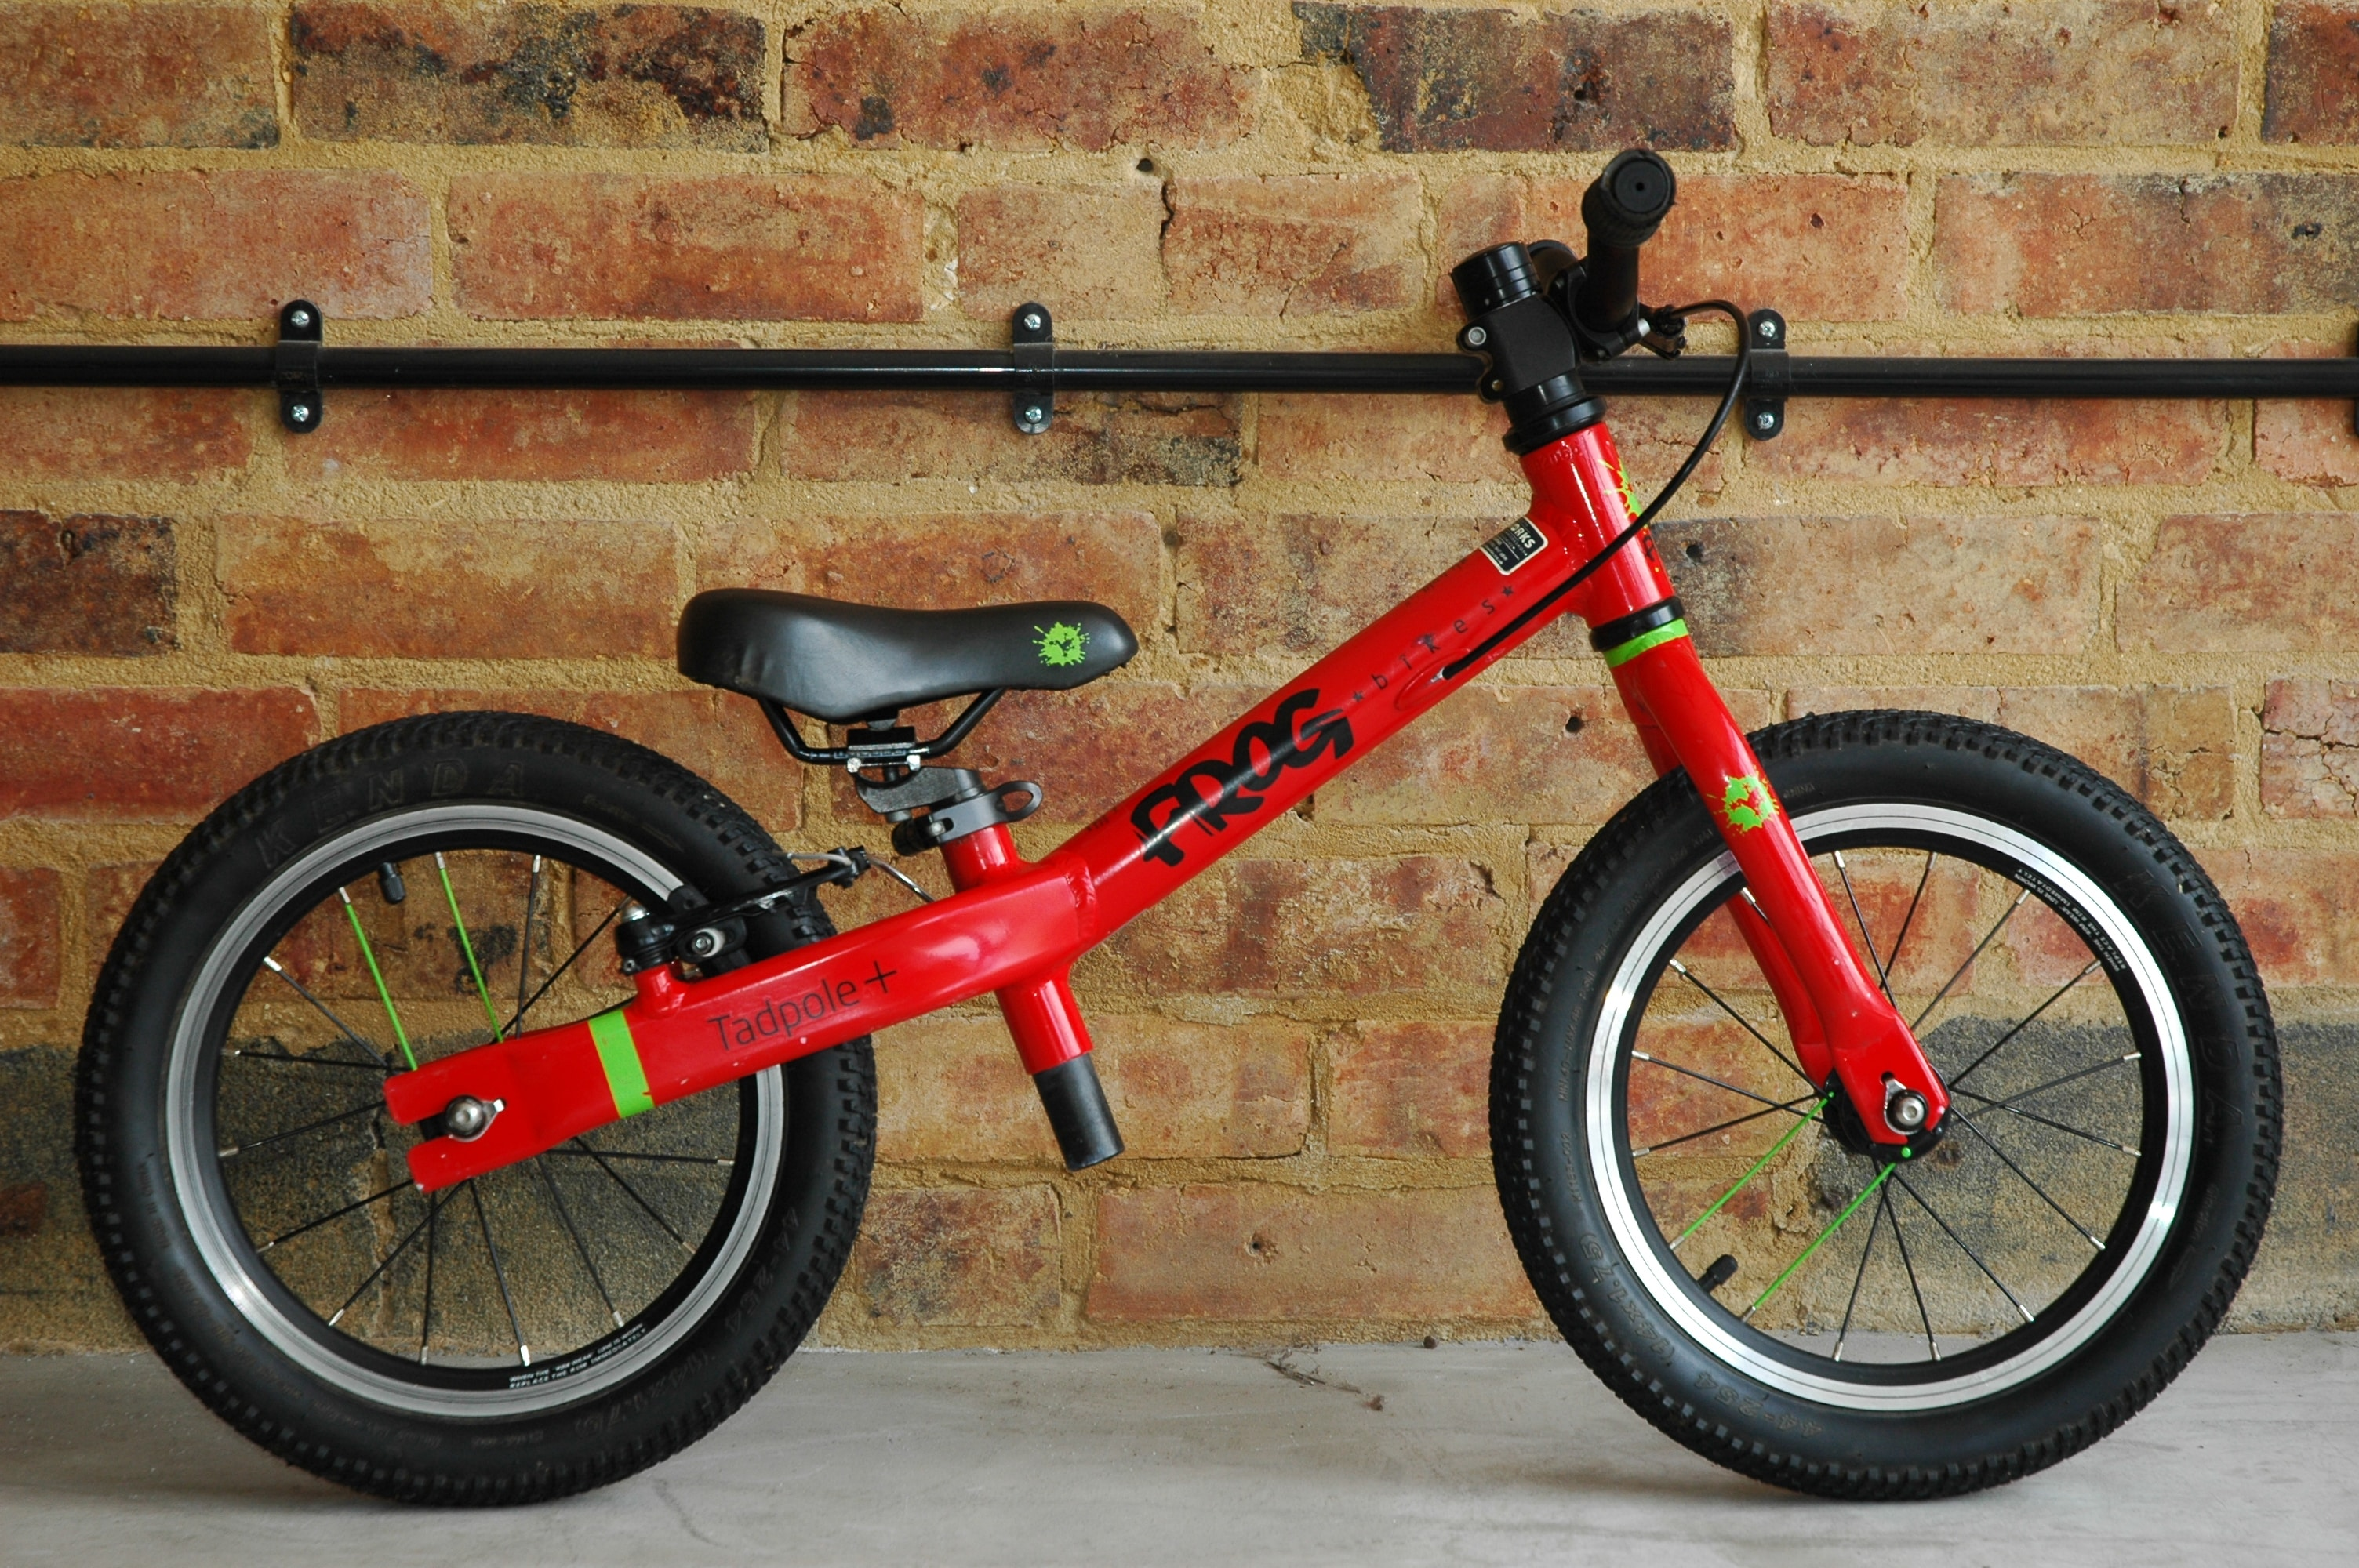 Used Bike - Frog Tadpole Plus - £69